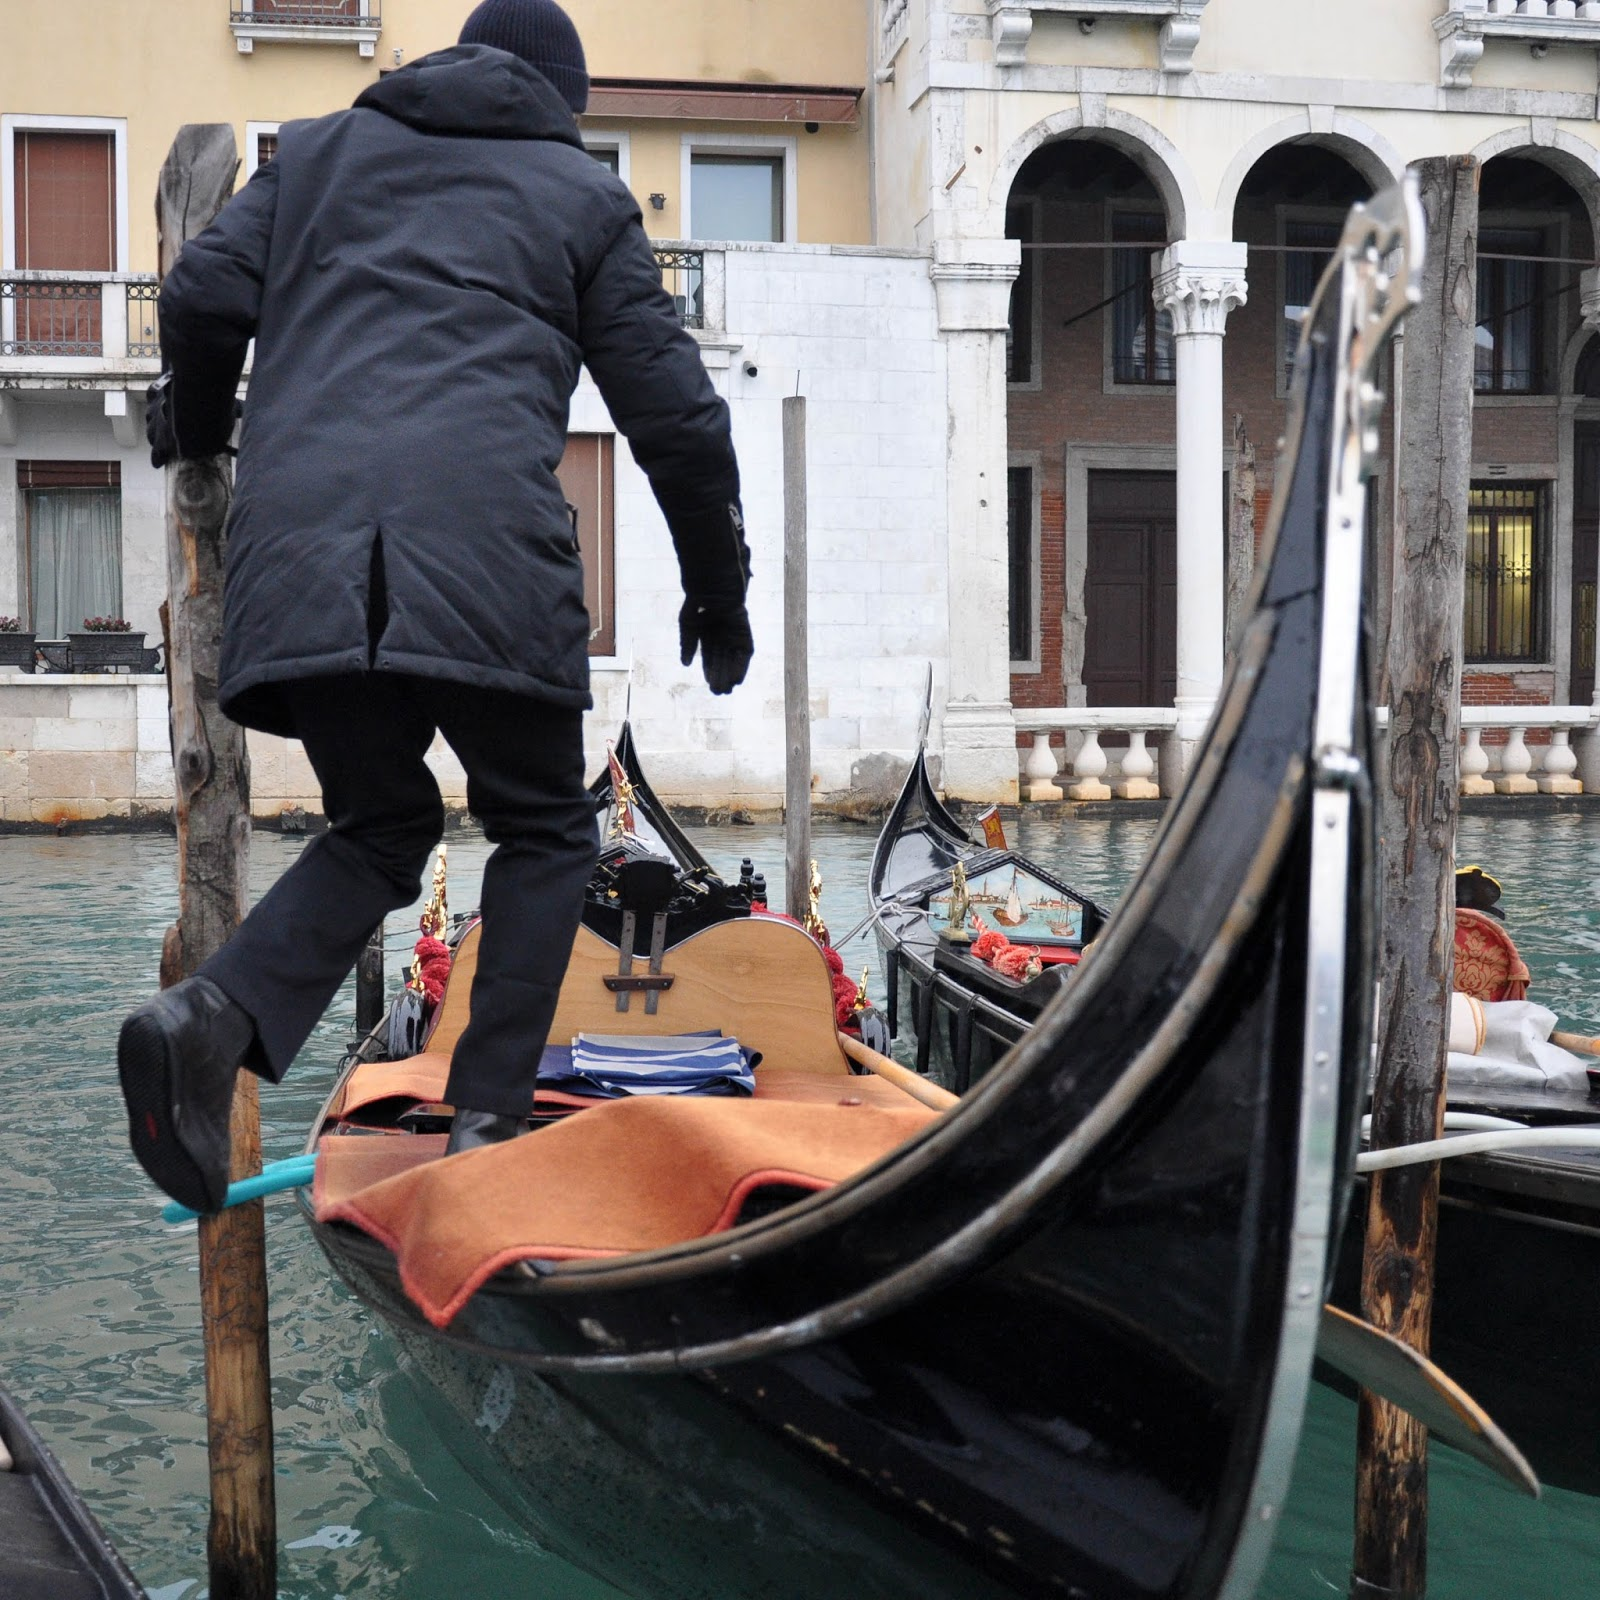 A gondolier gets on his gondola from a traghetto, Venice, Italy